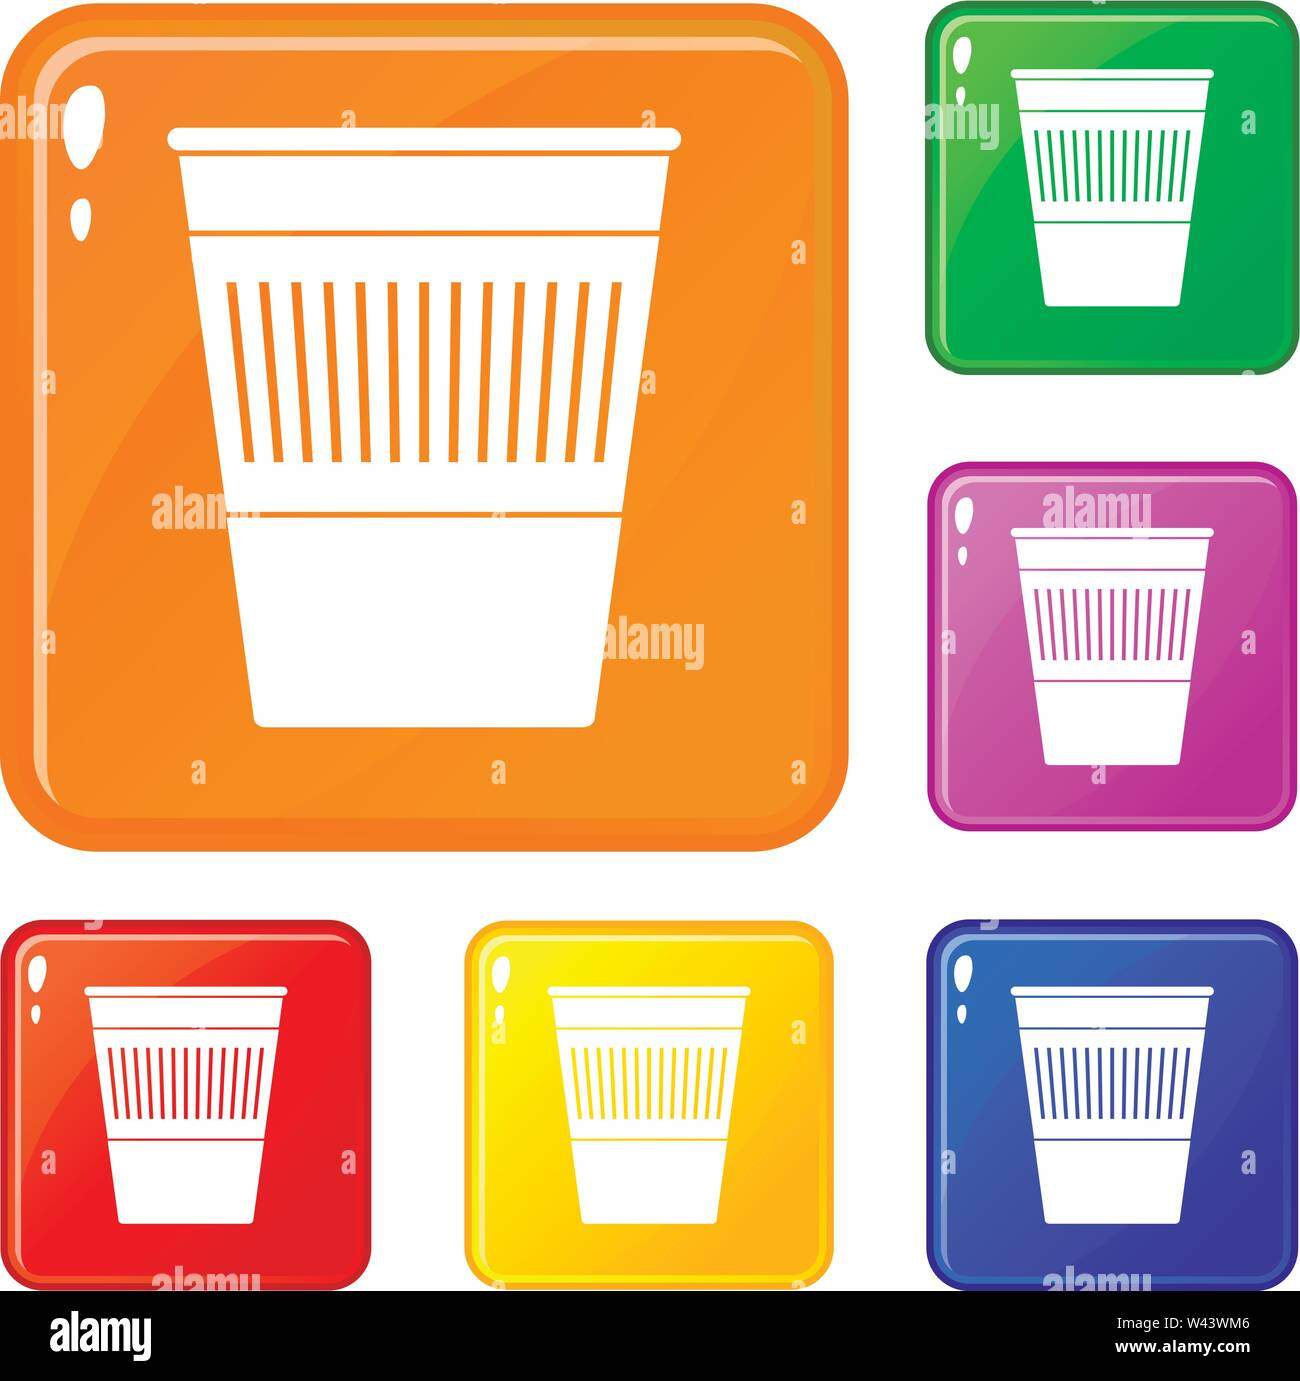 Plastic office waste bin icons set vector color - Stock Image